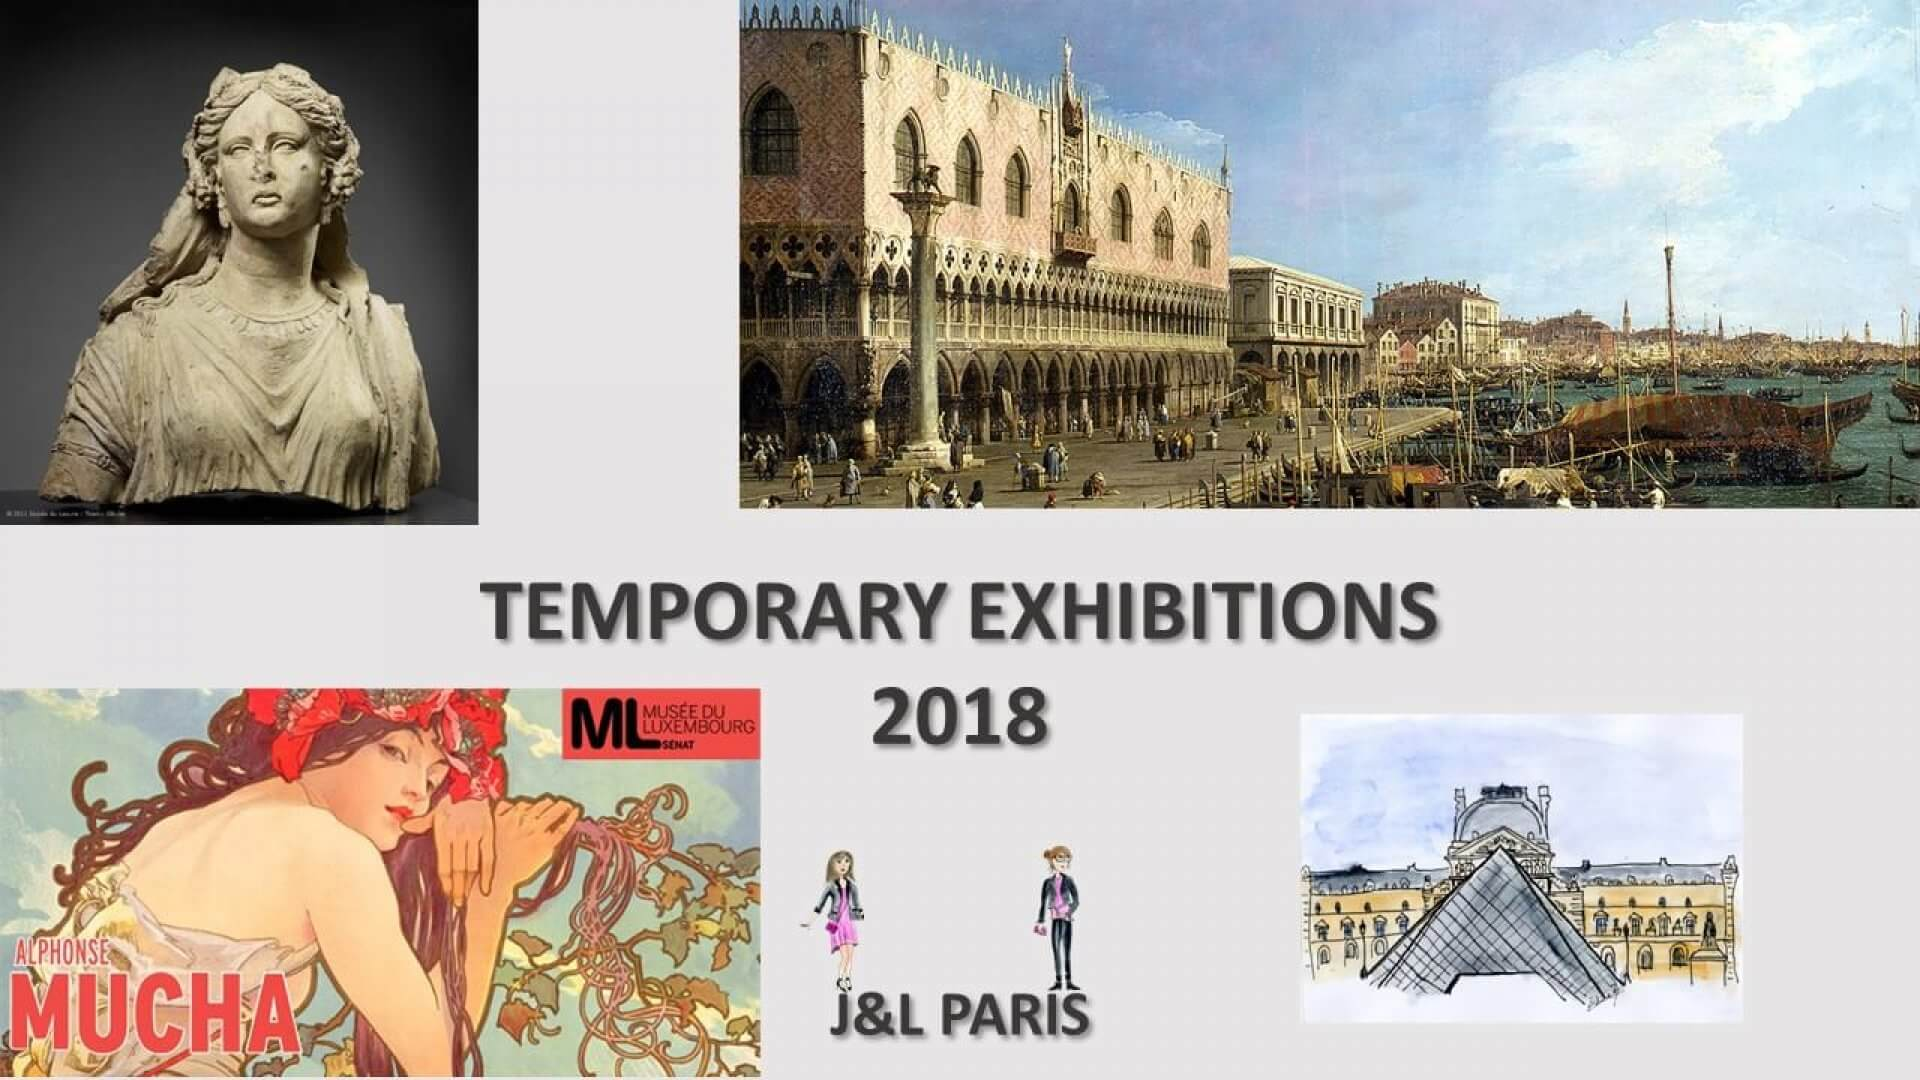 Temporary Exhibitions Paris 2018